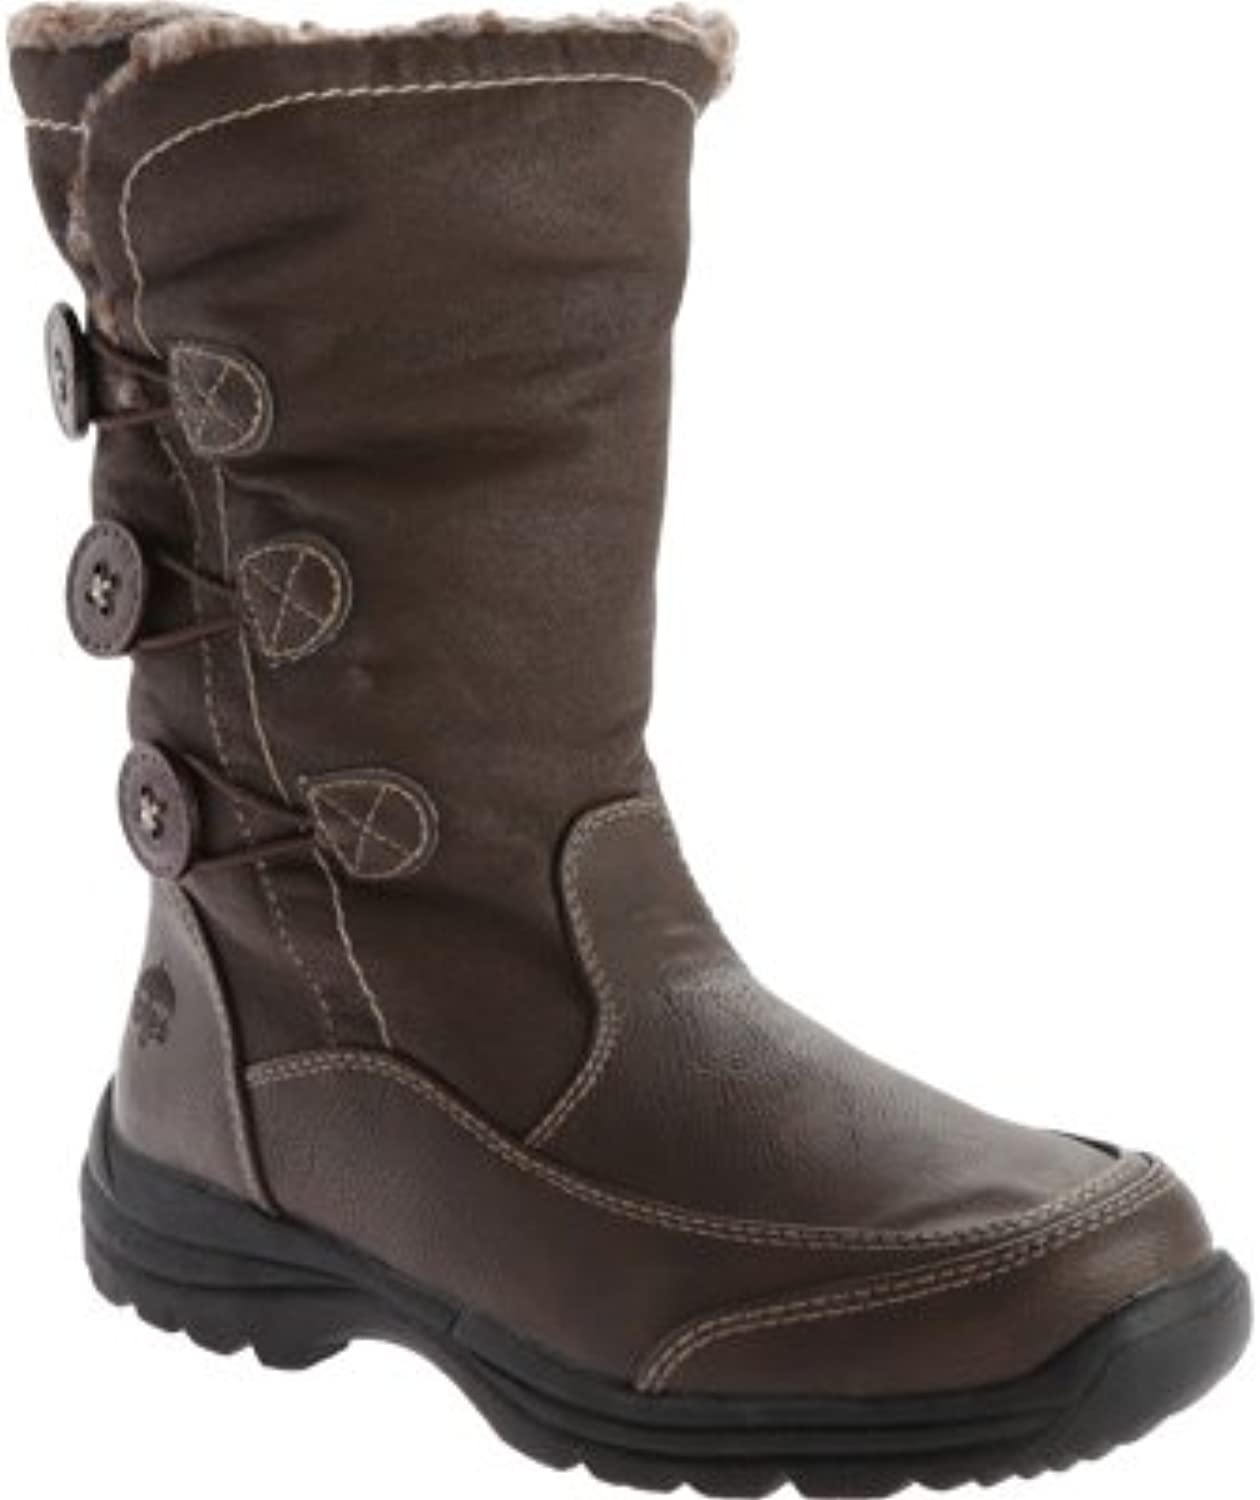 Totes Womens Cam Snowboot, Available in Wide Foot and Wide Calf Fit